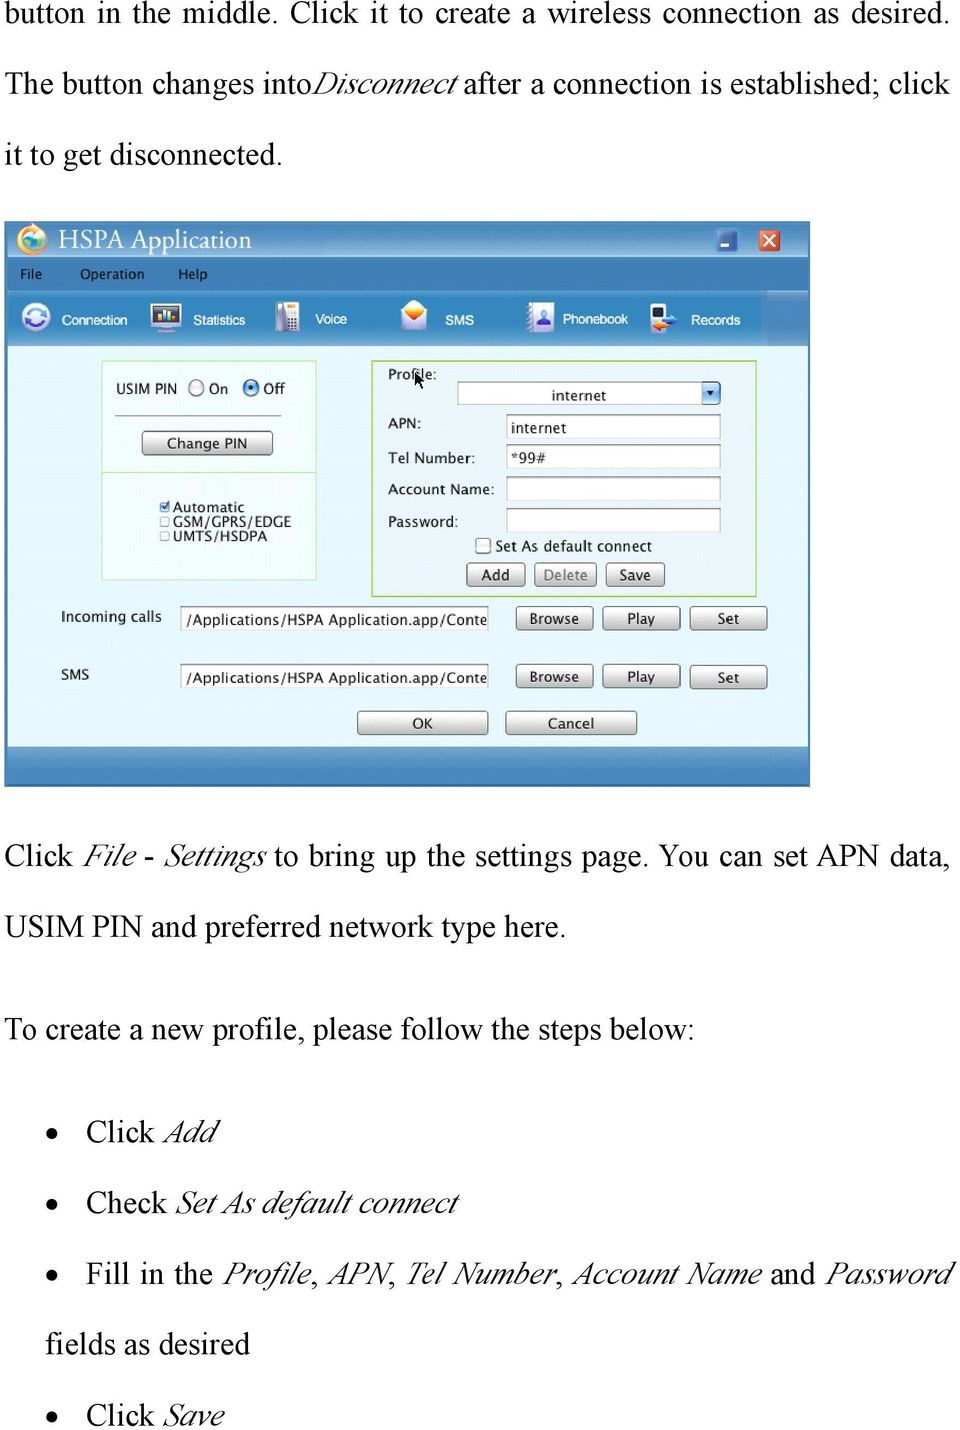 Click File - Settings to bring up the settings page. You can set APN data, USIM PIN and preferred network type here.